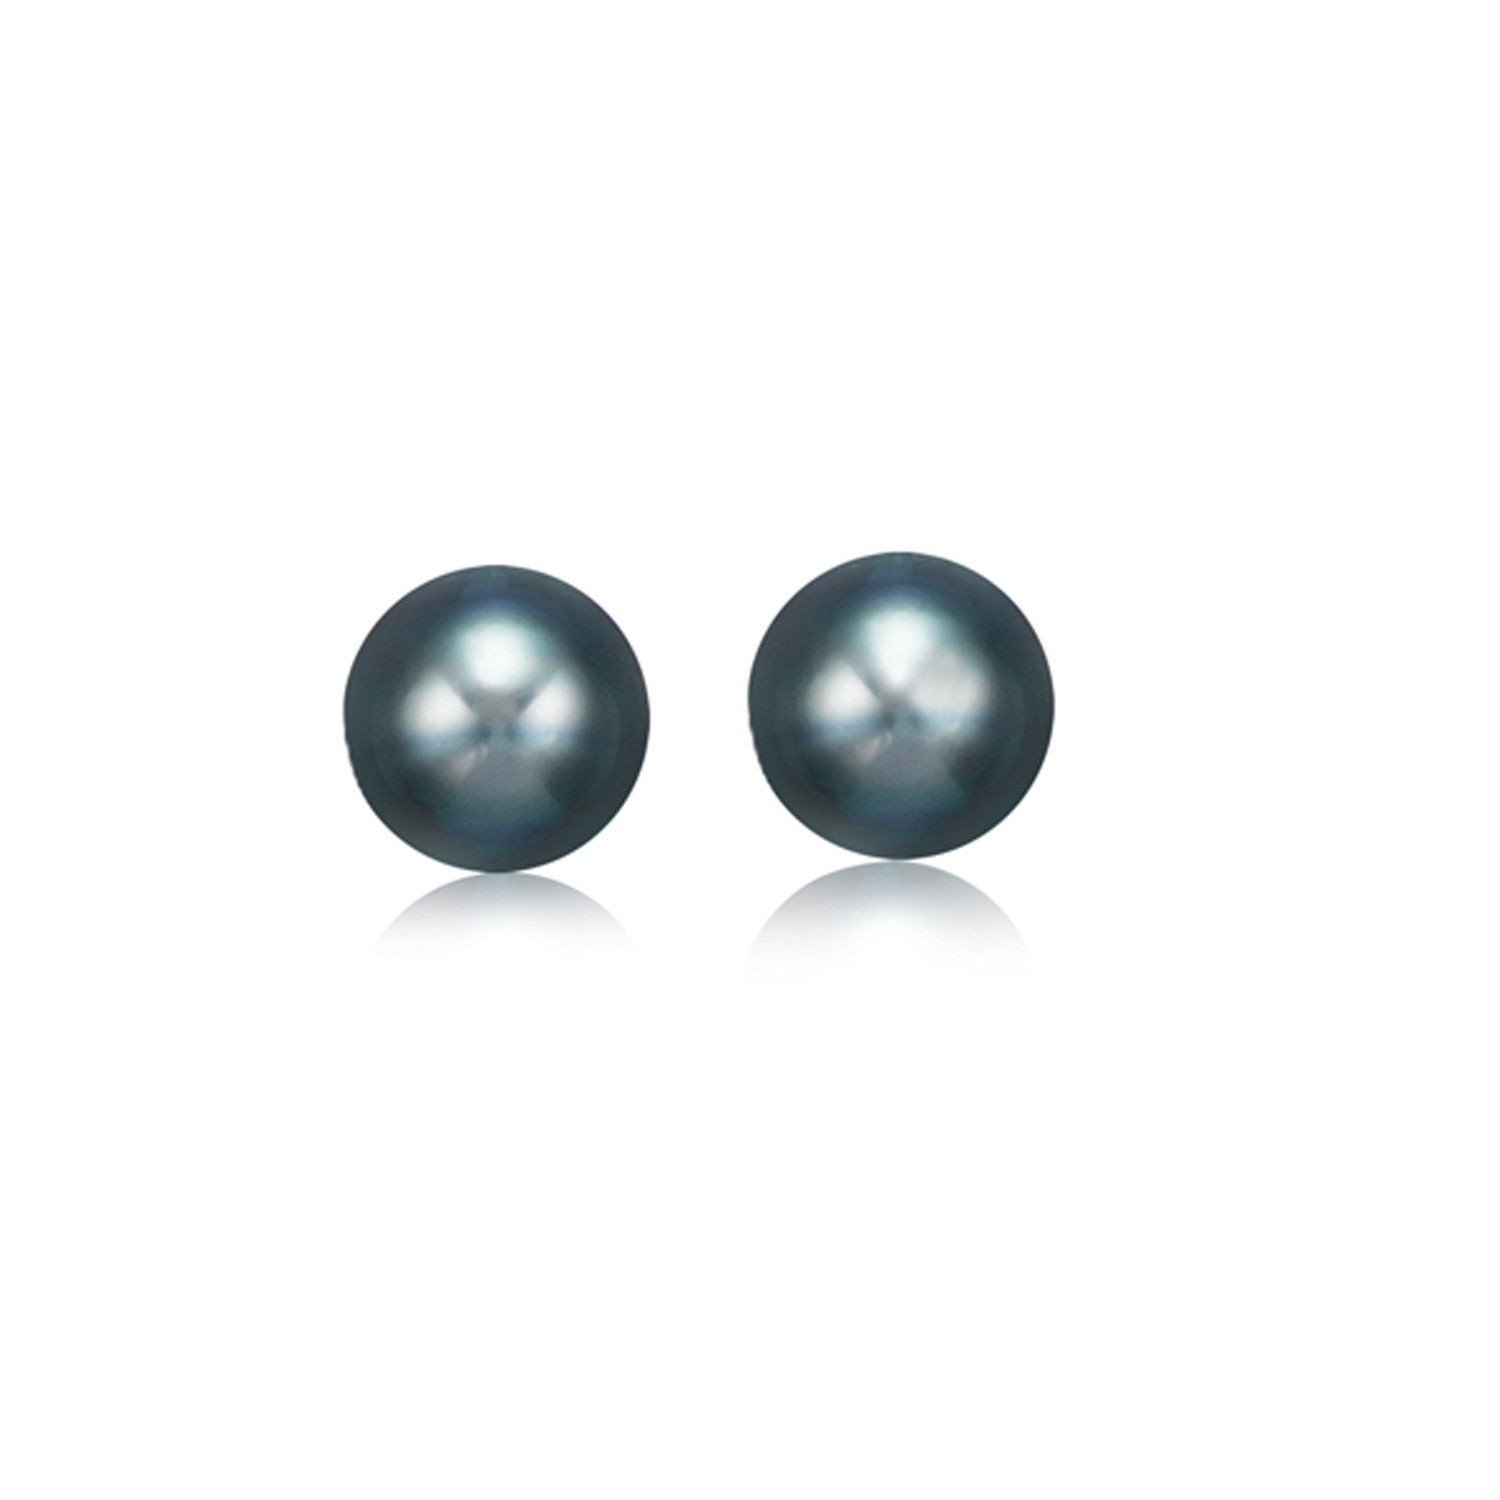 14K Yellow Gold Cultured Black Pearl Stud Earrings (6.0 mm)